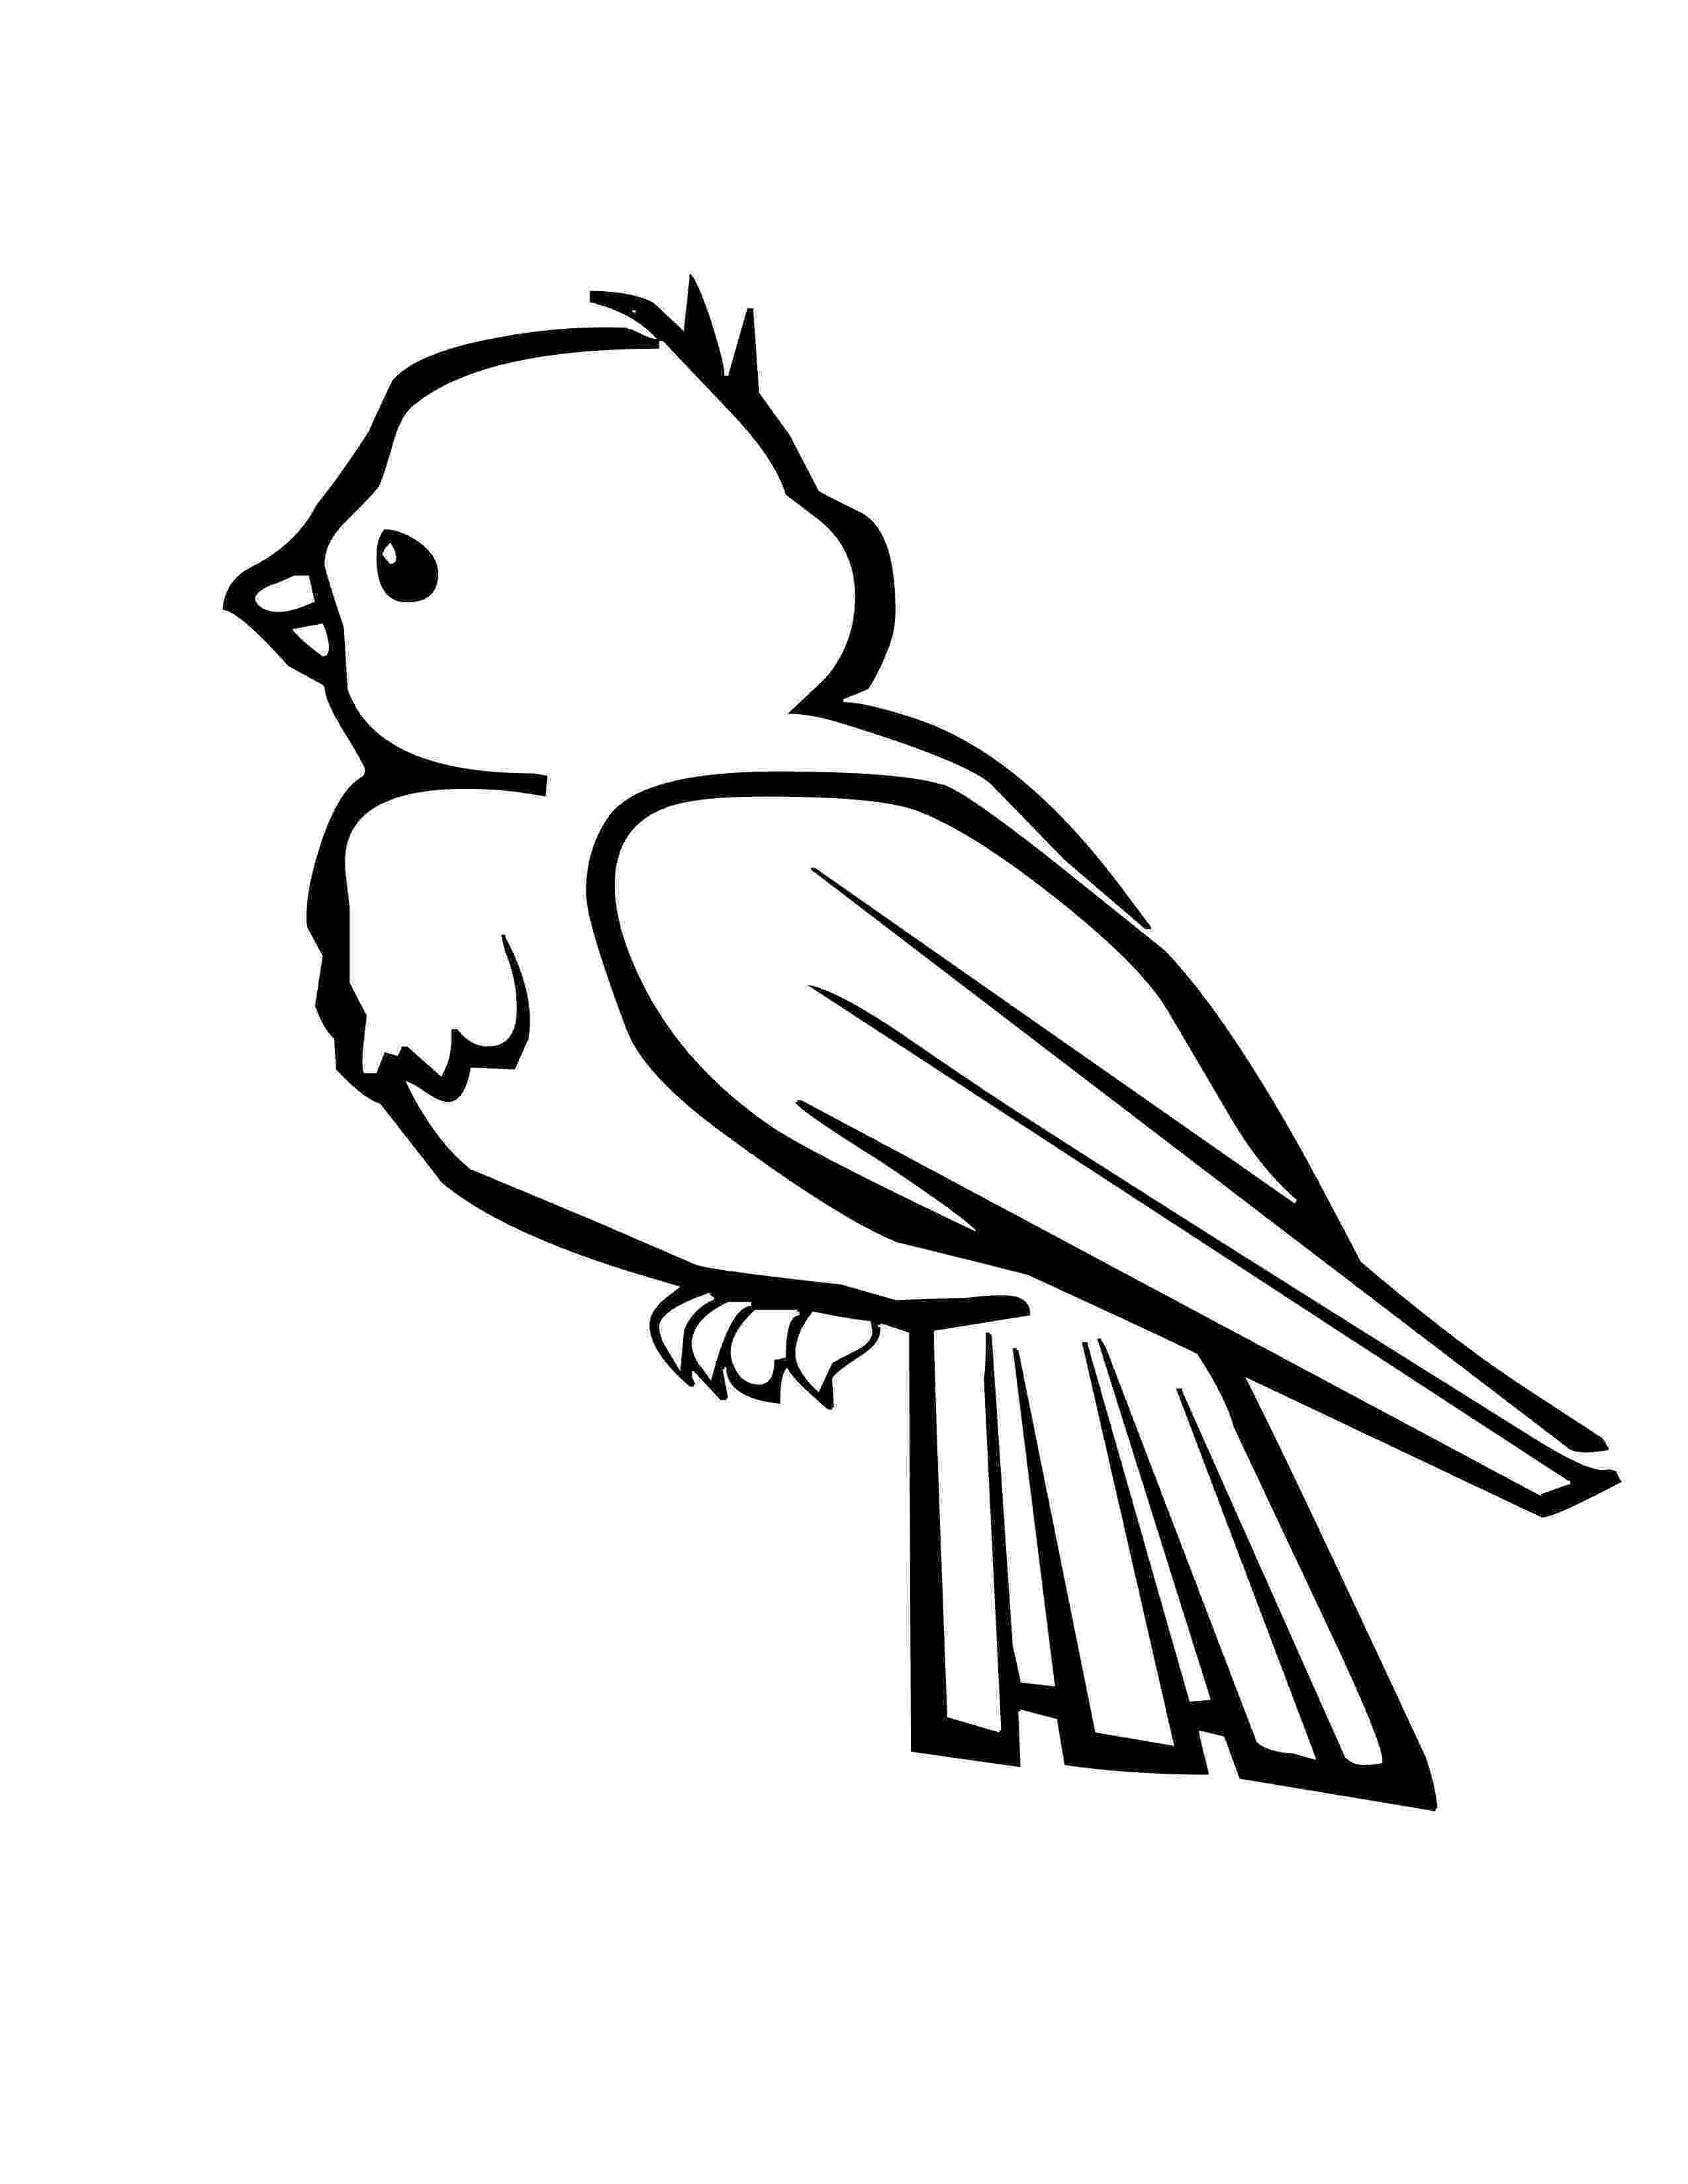 images of birds for colouring bird coloring pages getcoloringpagescom images of for birds colouring